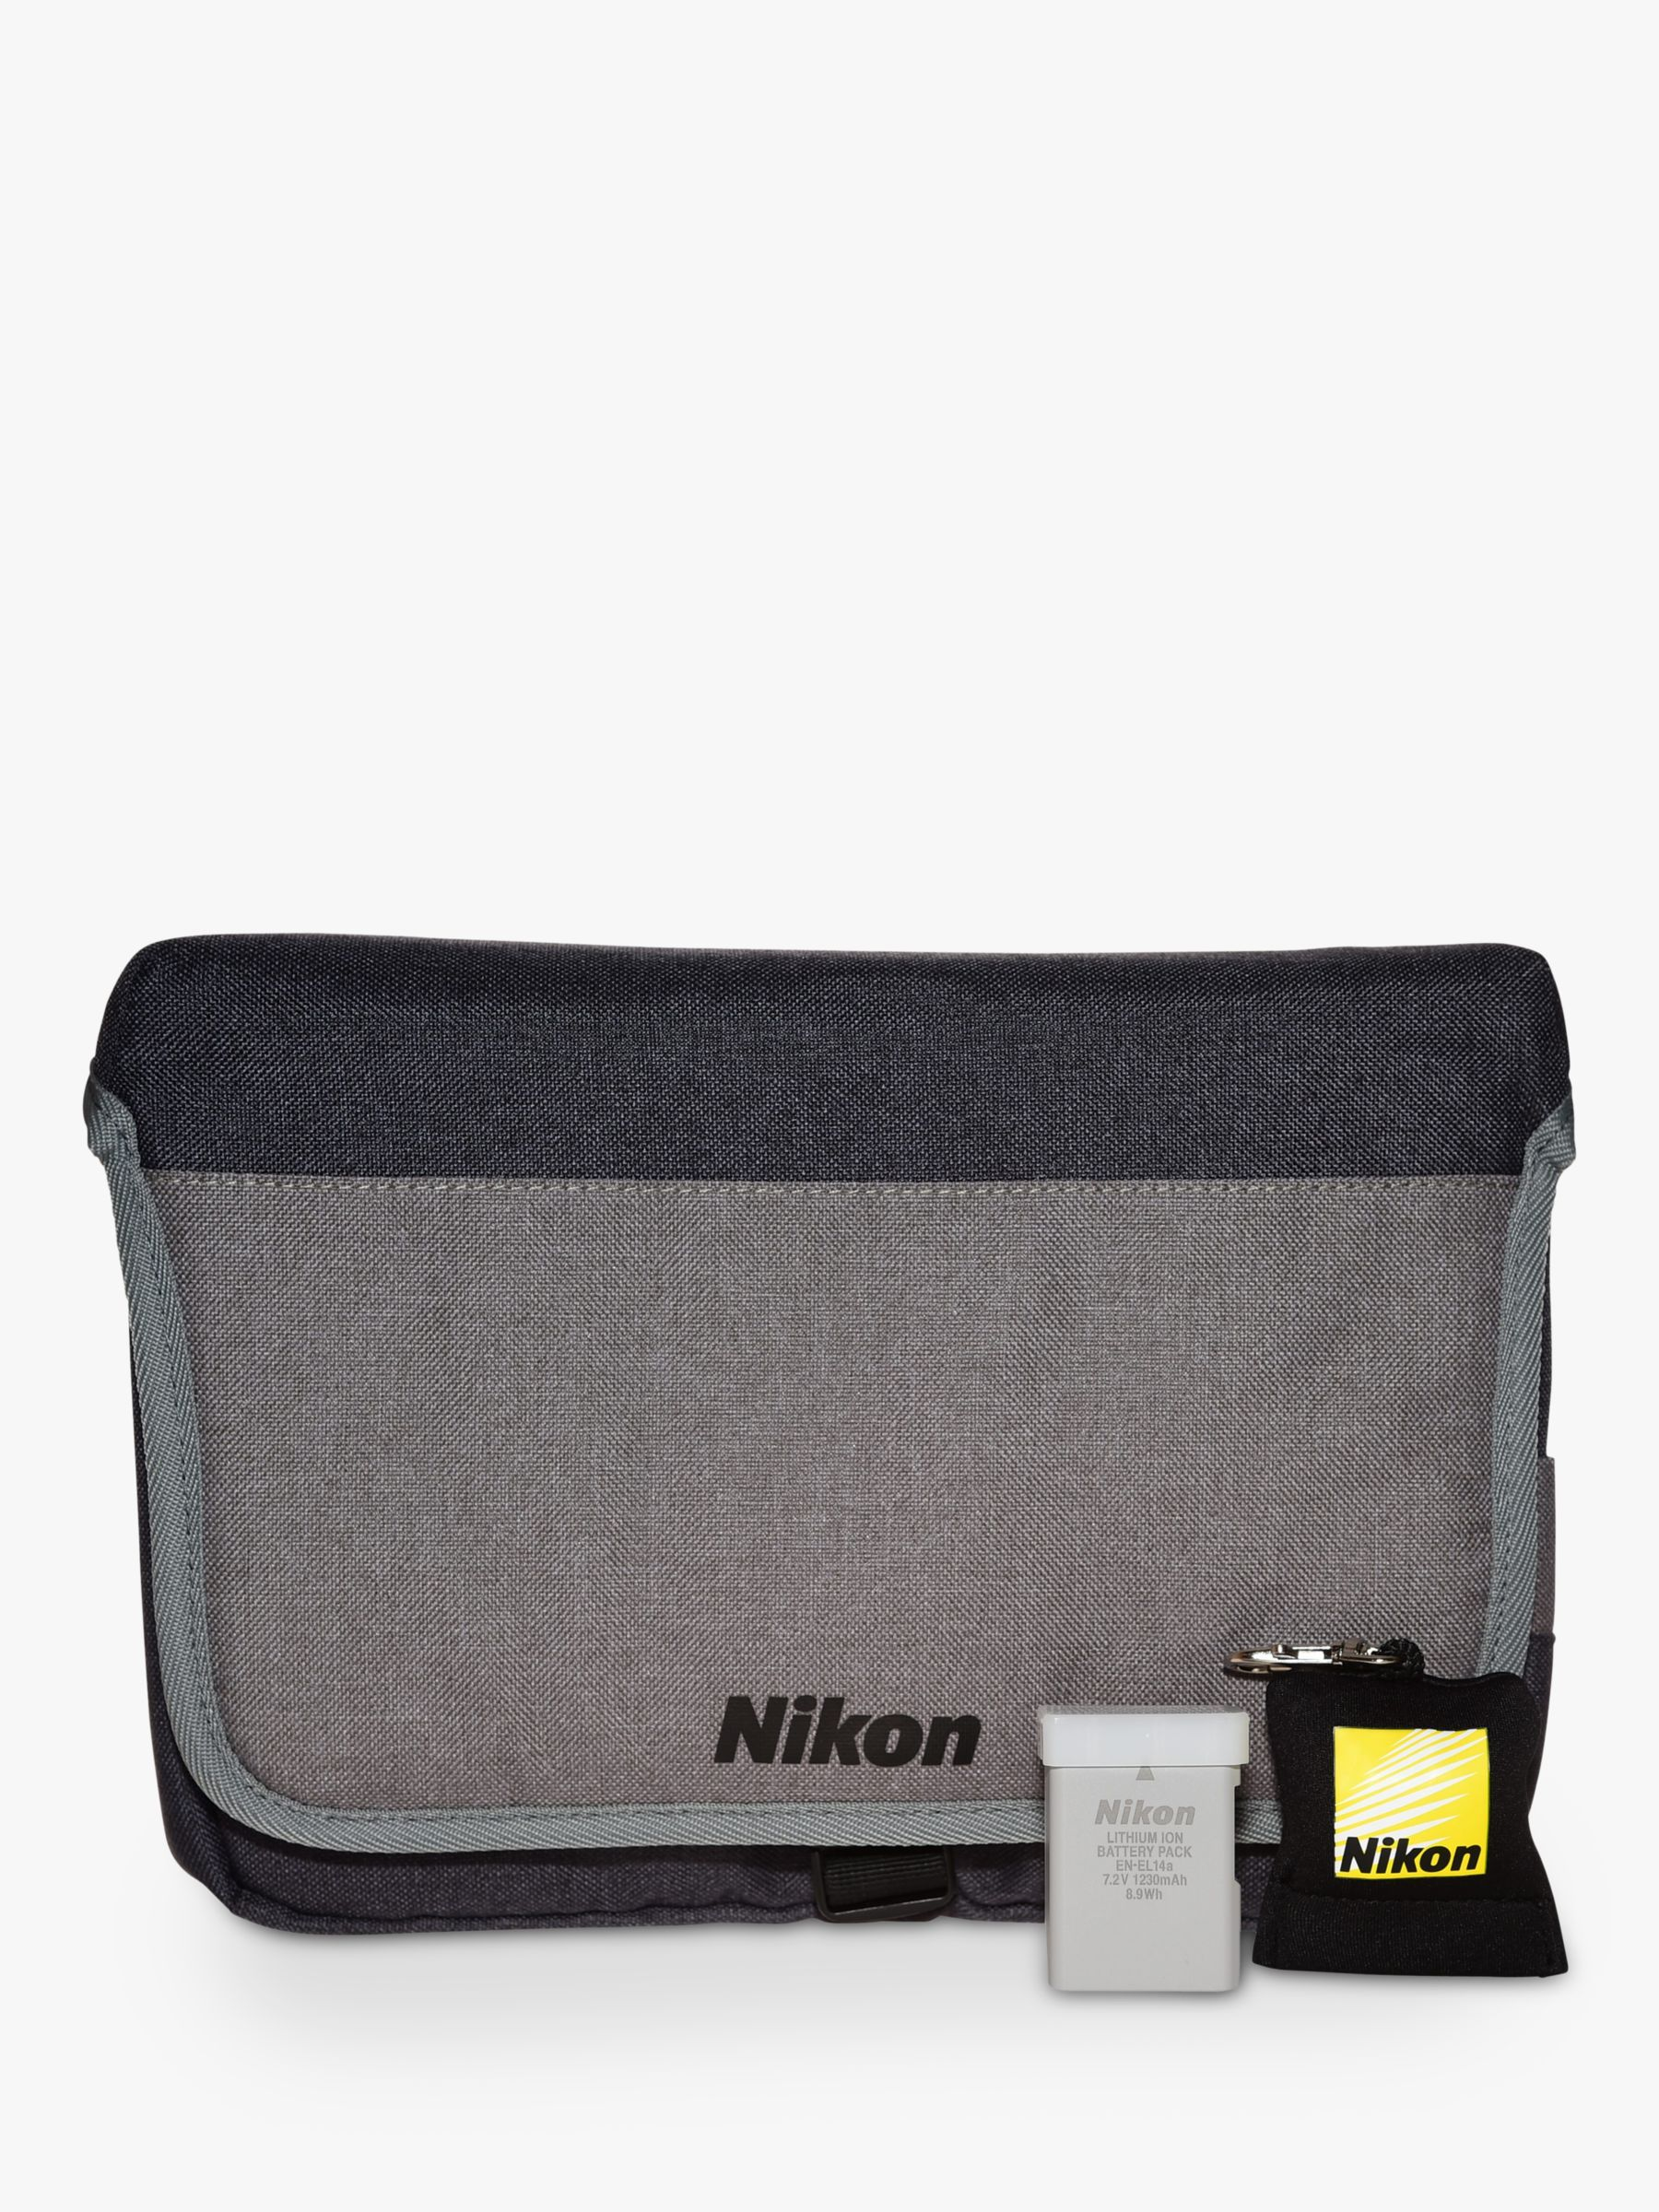 Nikon Nikon DSLR Accessory Kit With Carry Case, Lens Cleaning Cloth & Spare Battery